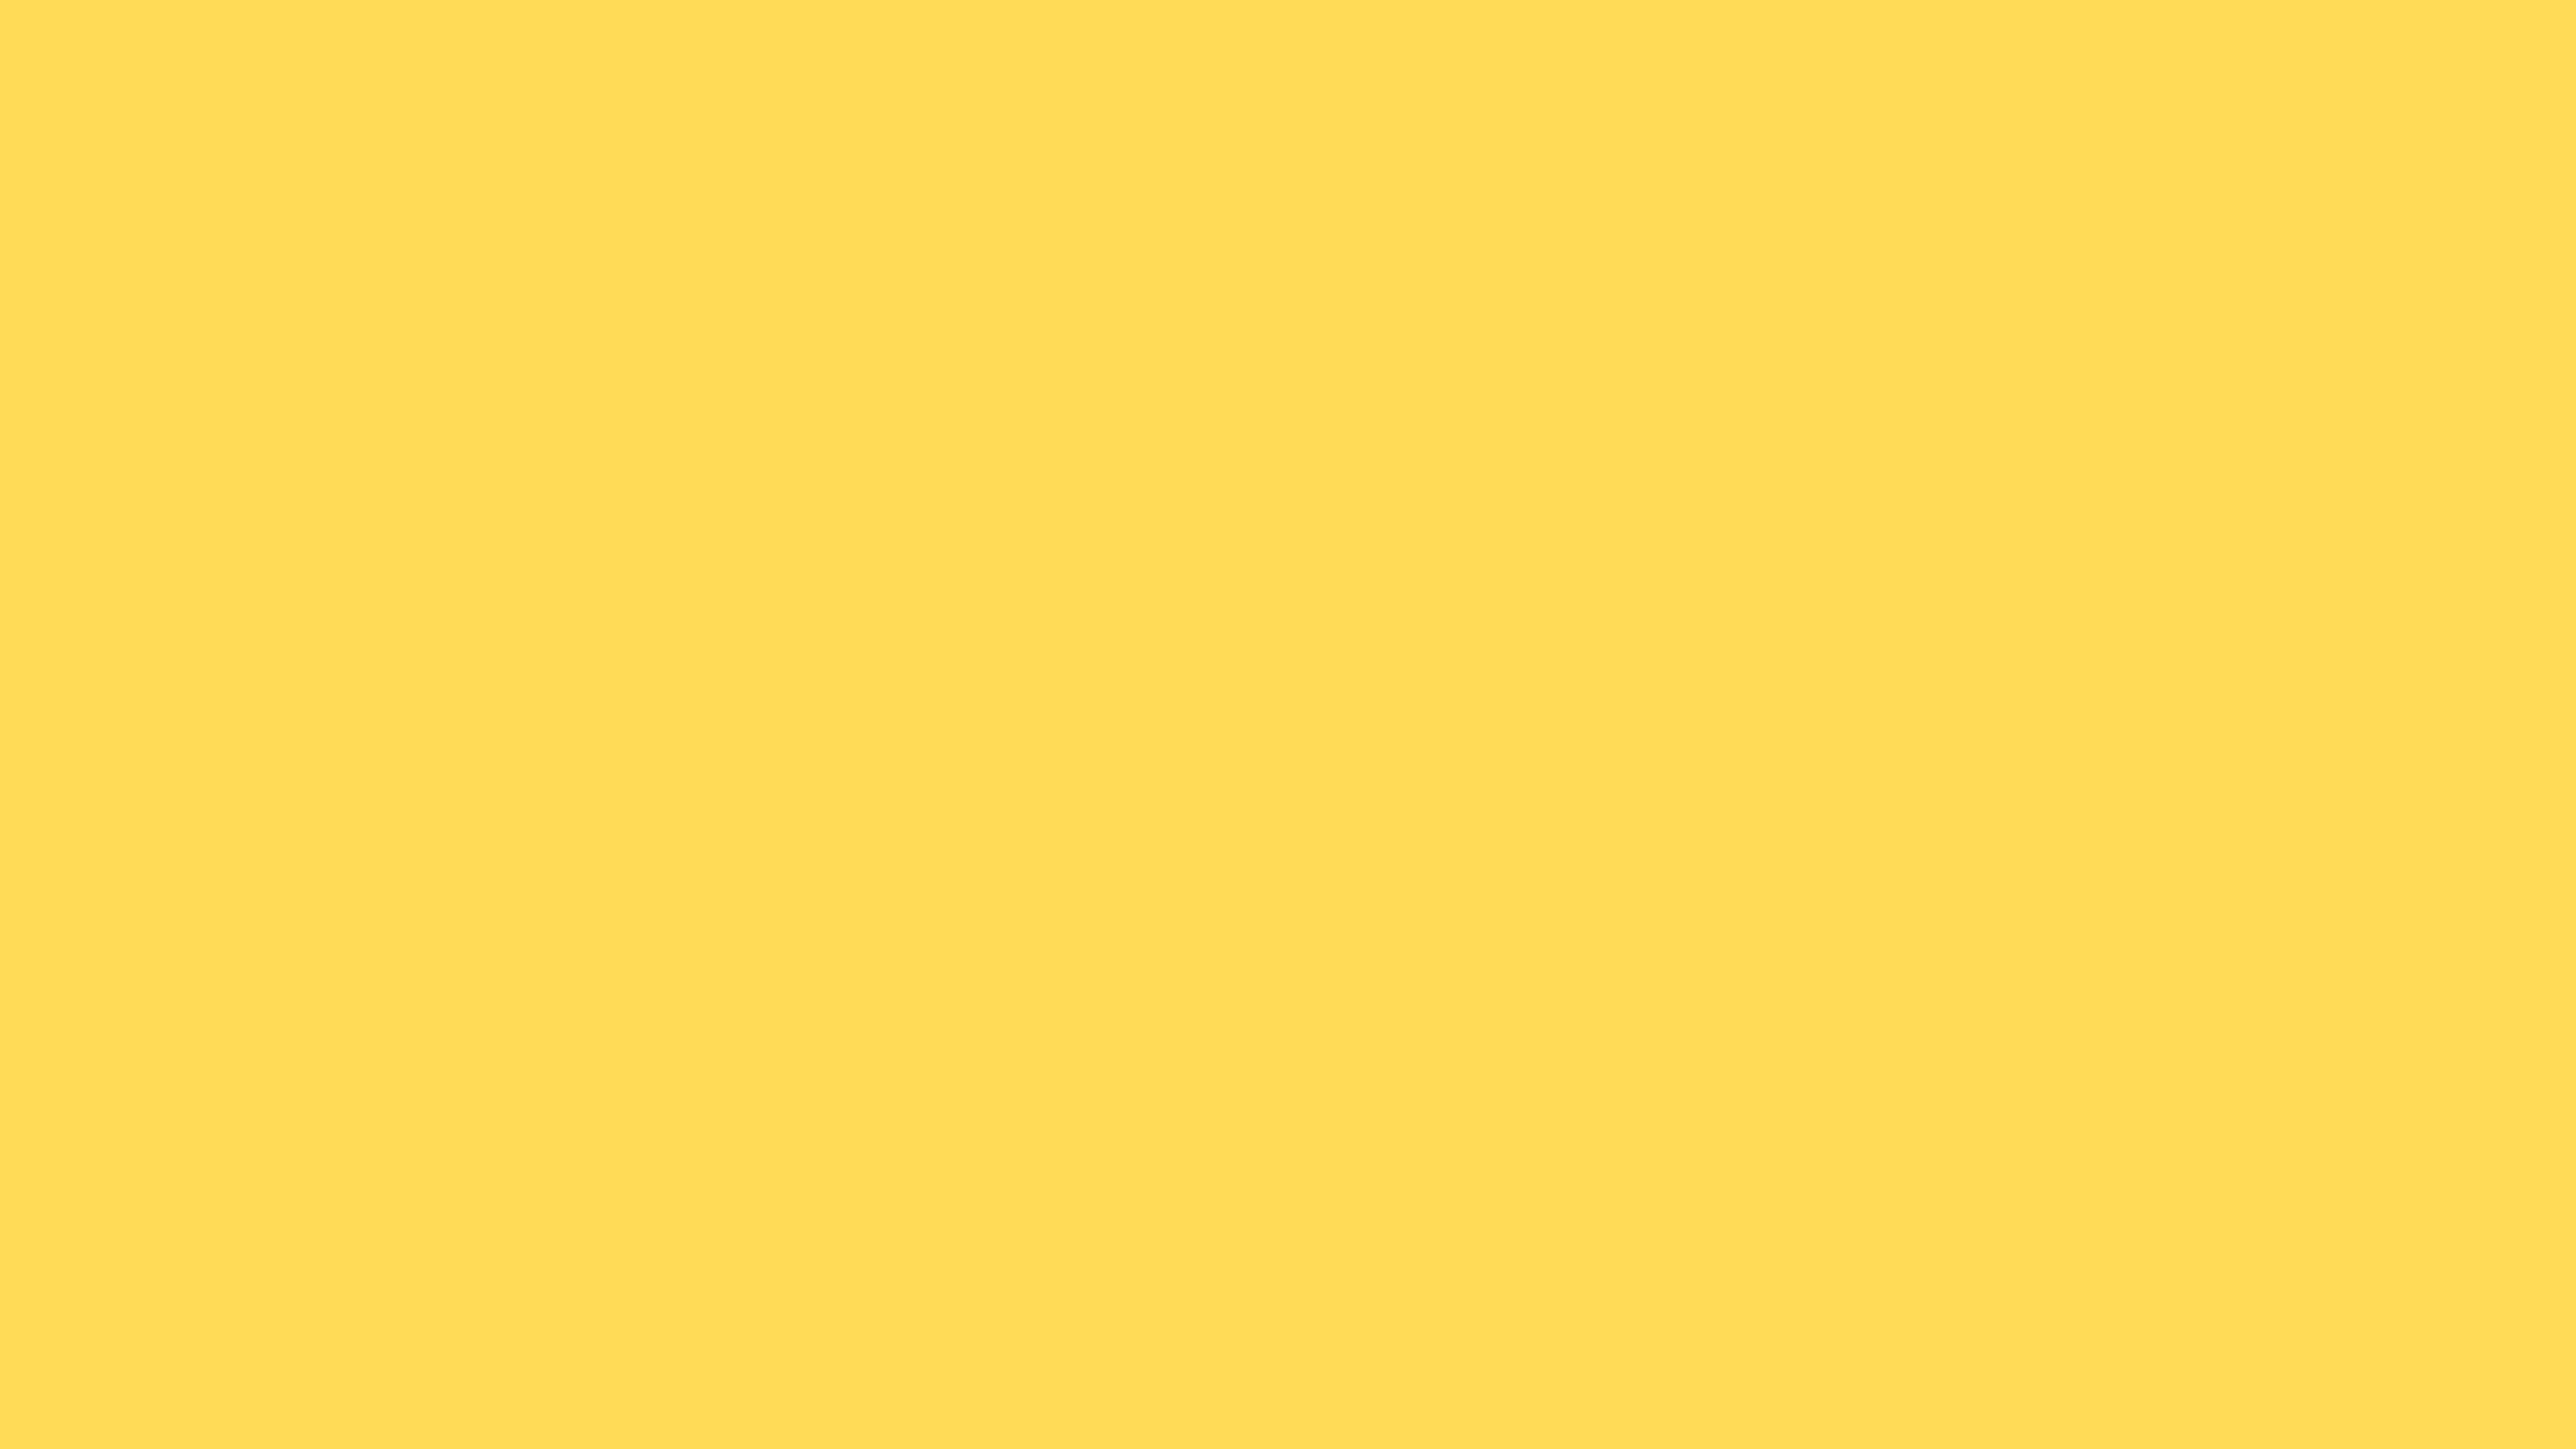 5120x2880 Mustard Solid Color Background